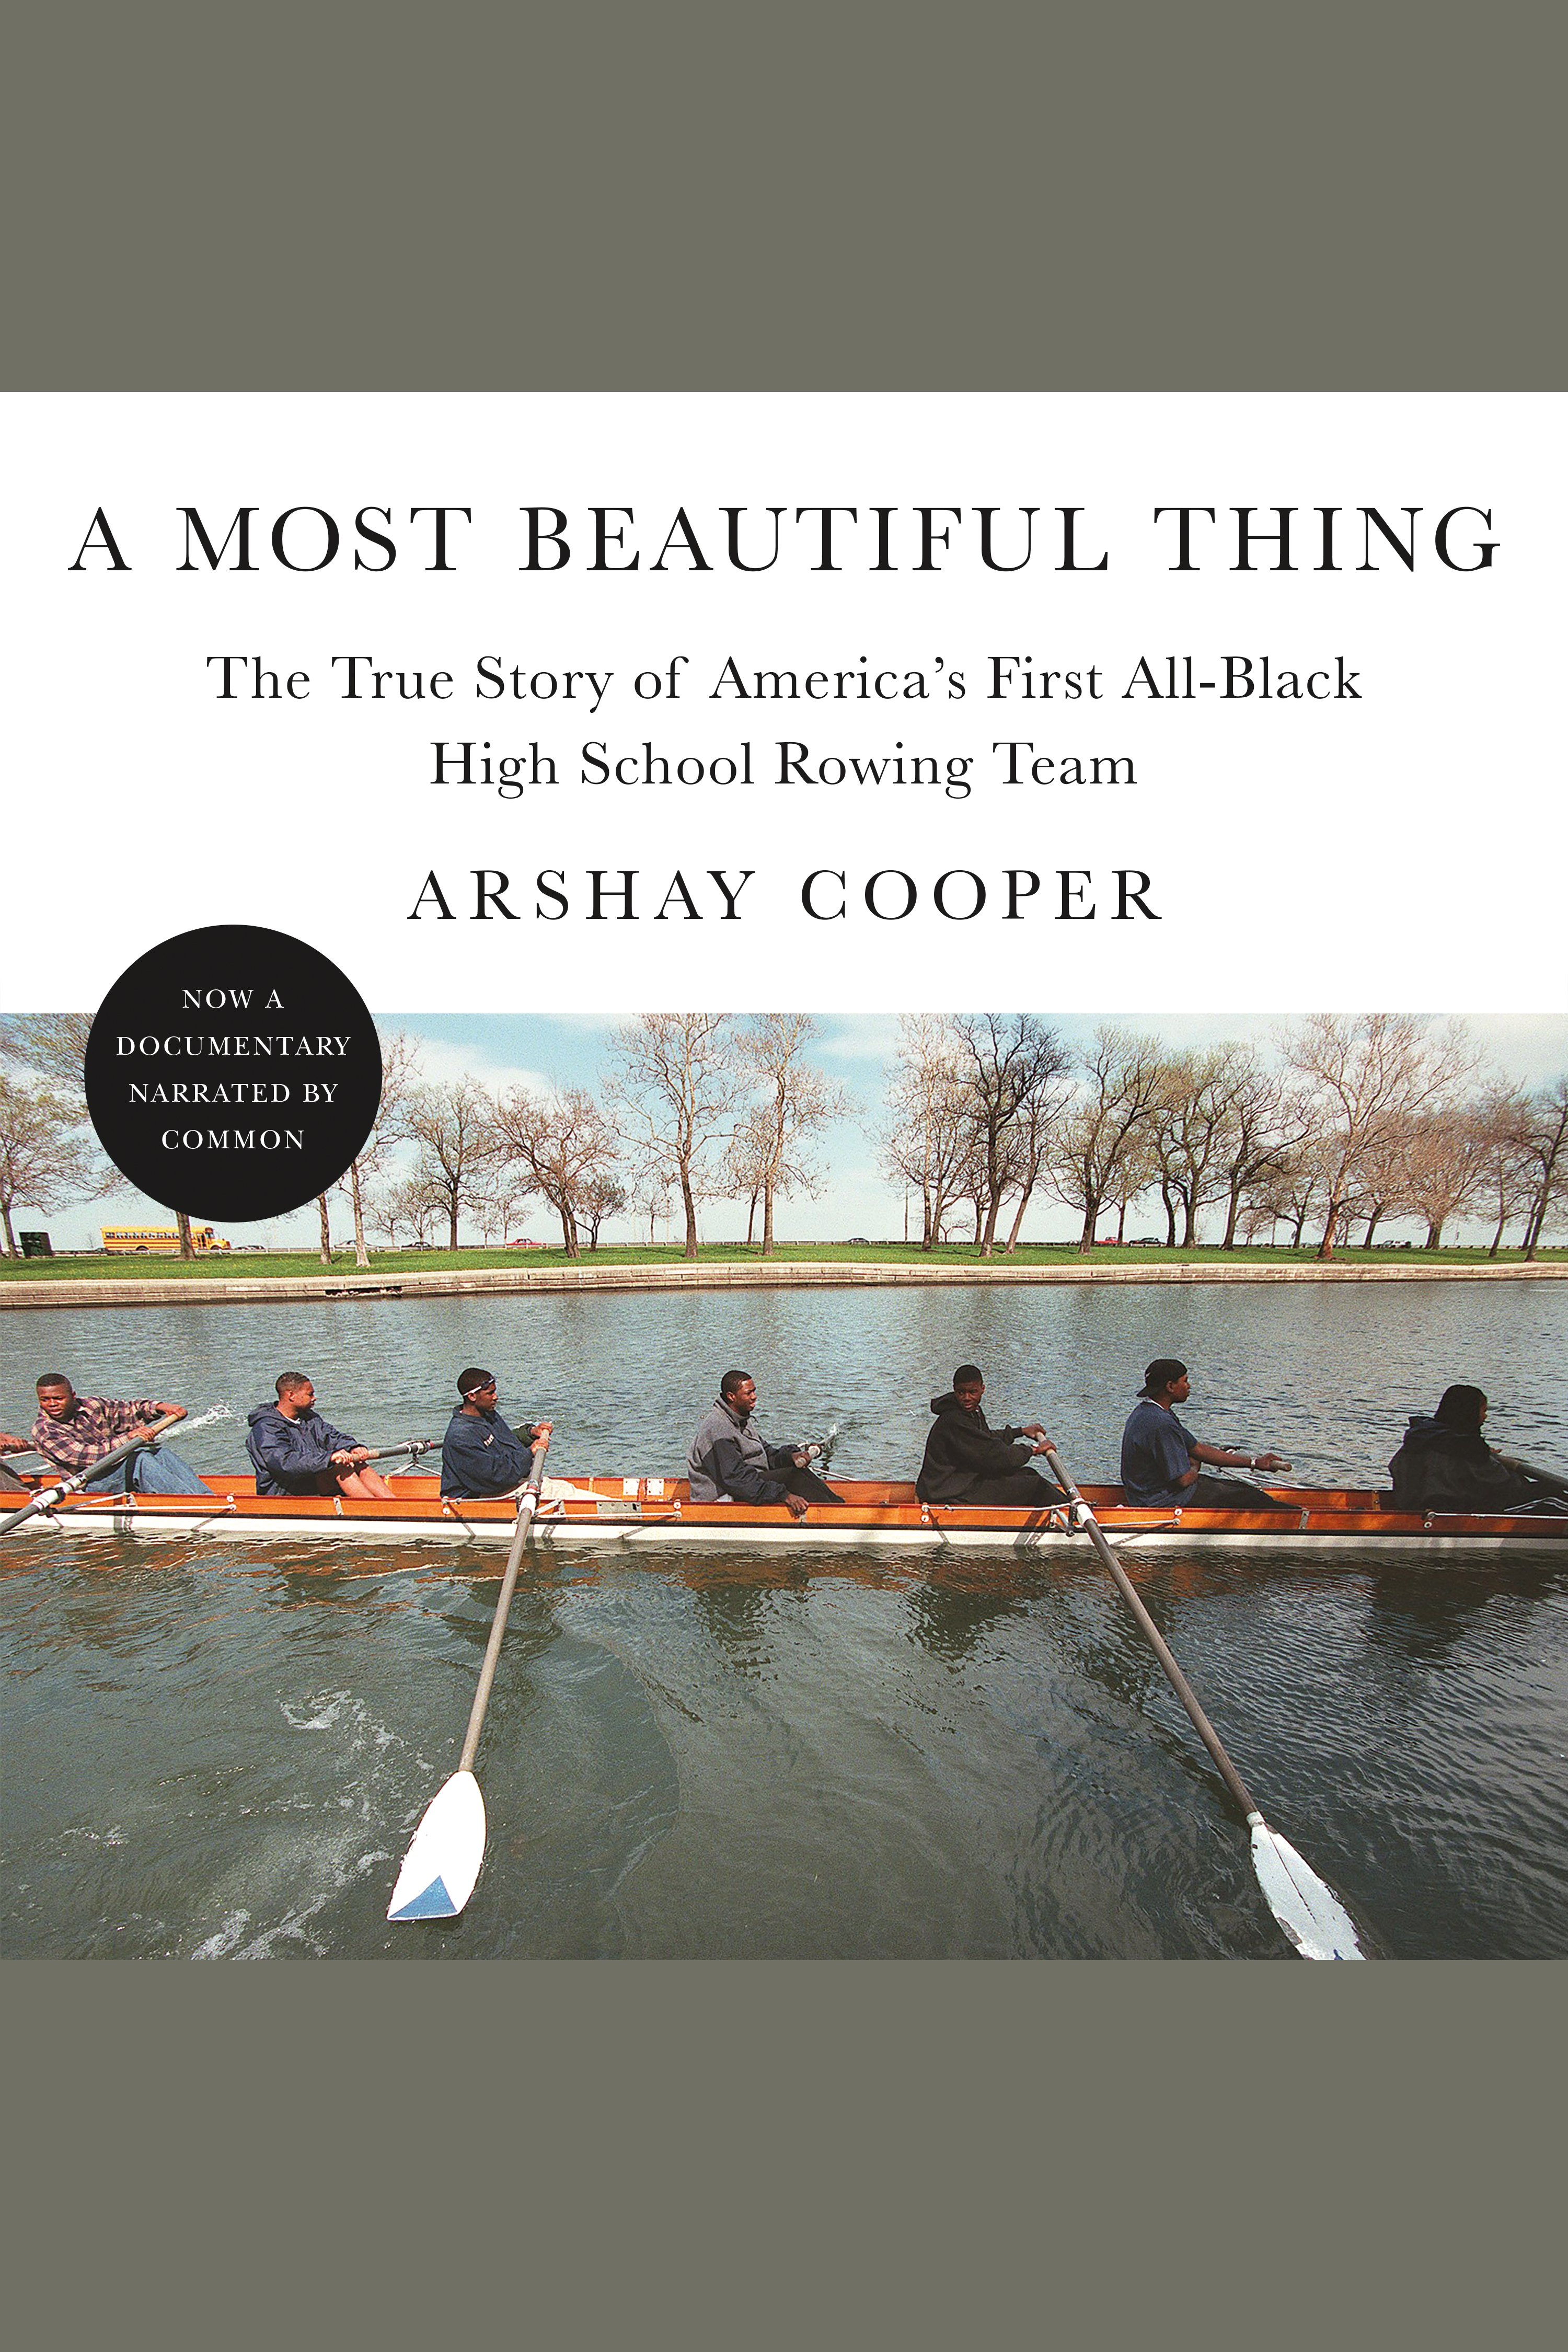 A Most Beautiful Thing The True Story of America's First All-Black High School Rowing Team cover image